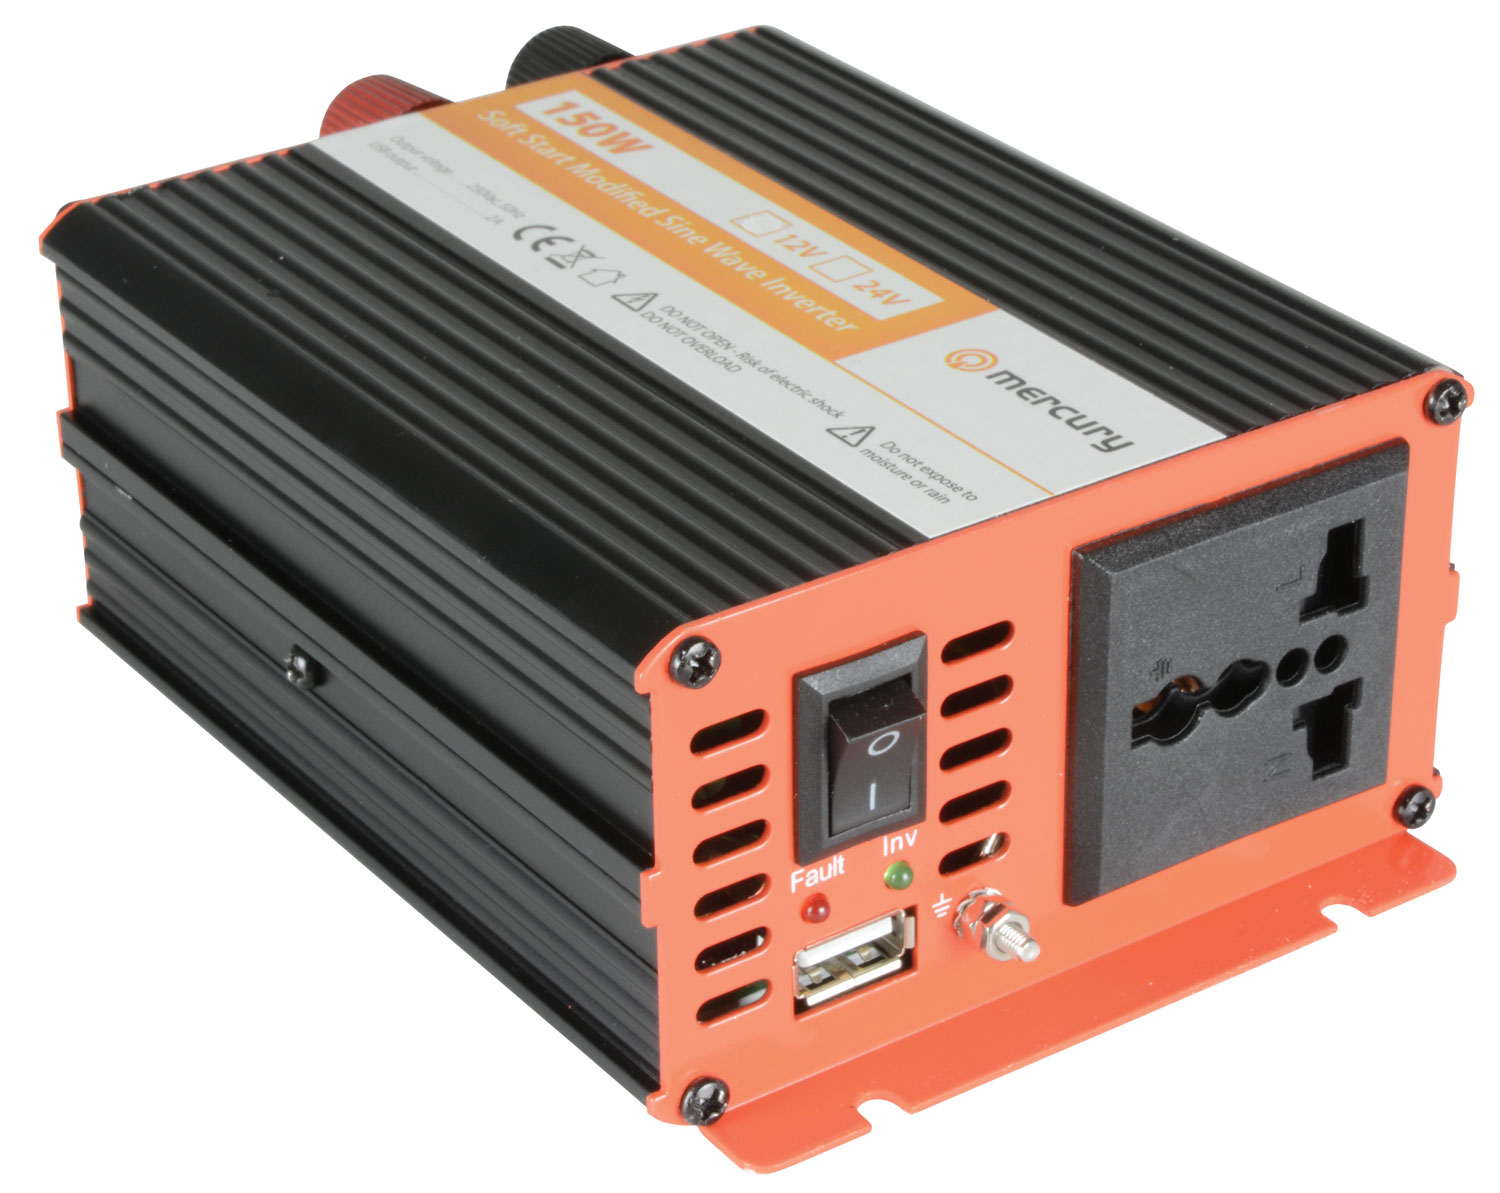 24V Softstart Power Inverter